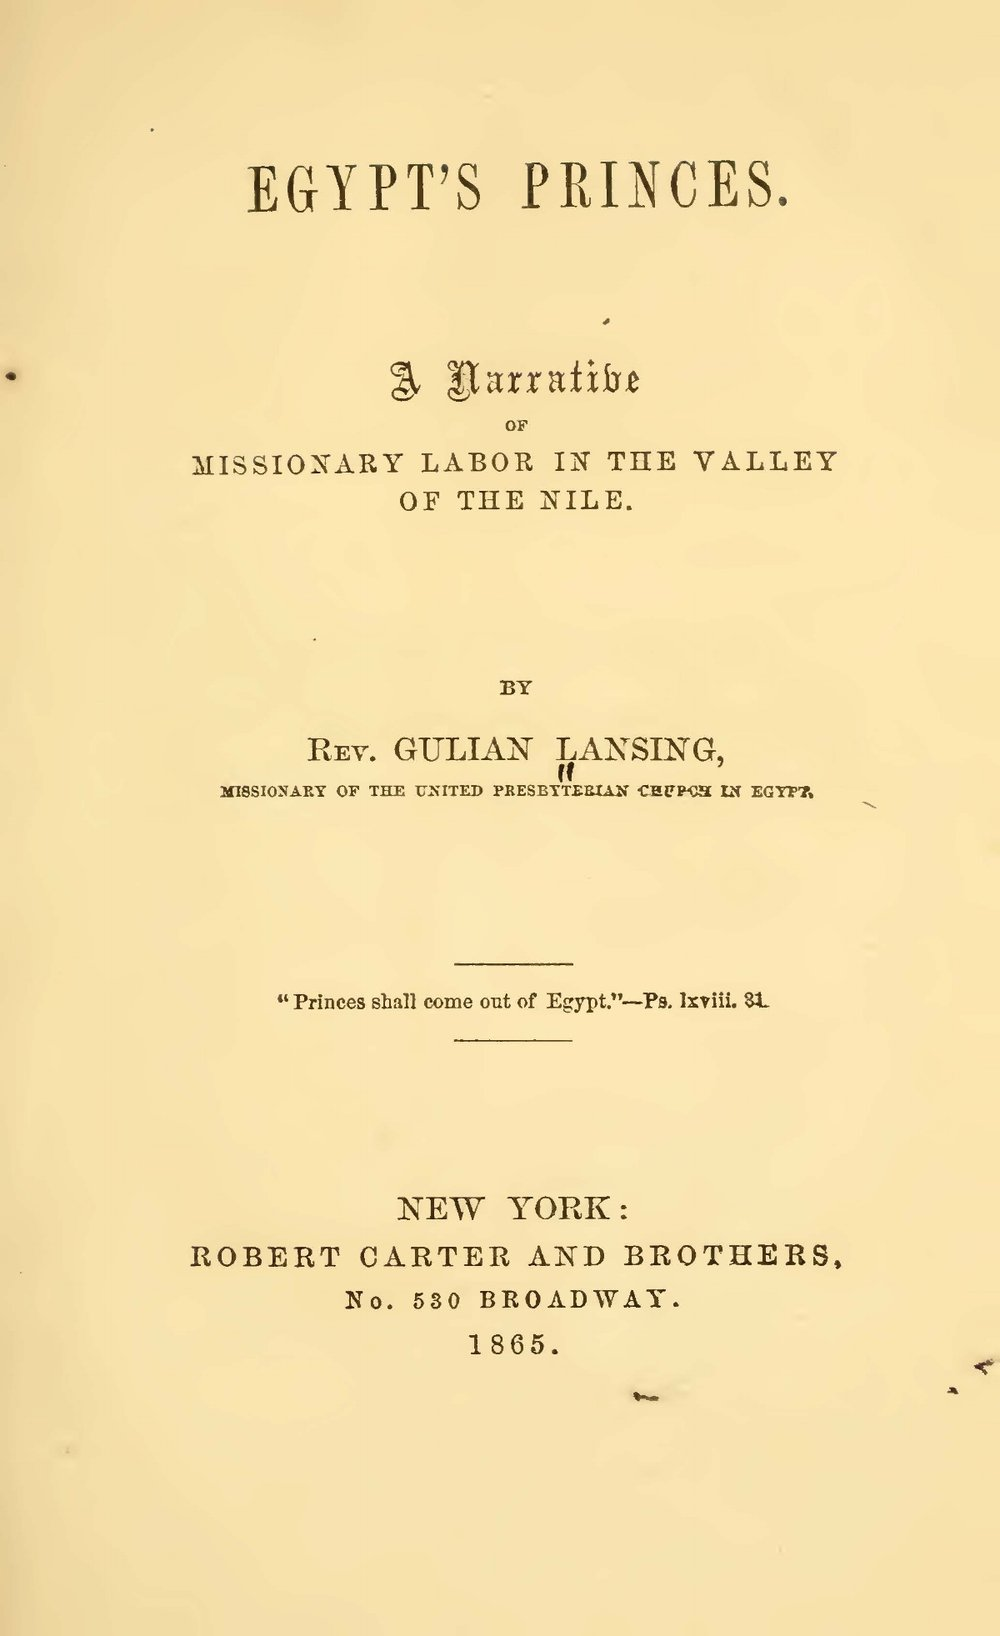 Lansing, Gulian, Egypt's Princes A Narrative of Missionary Labor in the Valley of the Nile Title Page.jpg